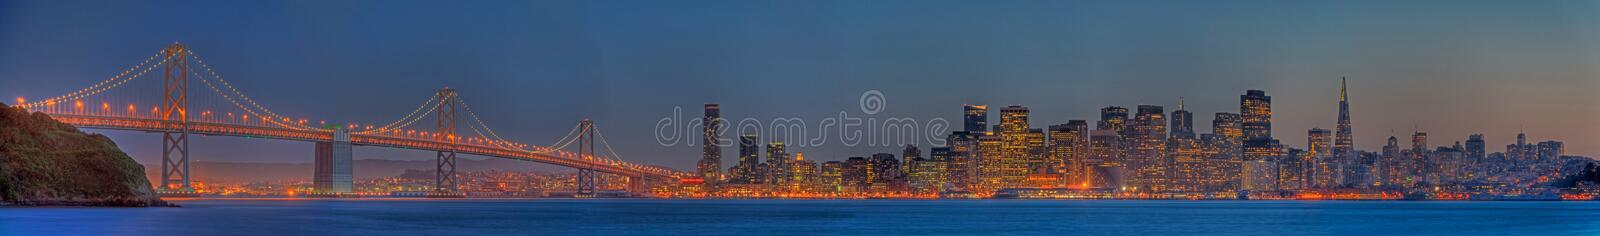 Panorama da skyline de San Francisco no crepúsculo foto de stock royalty free